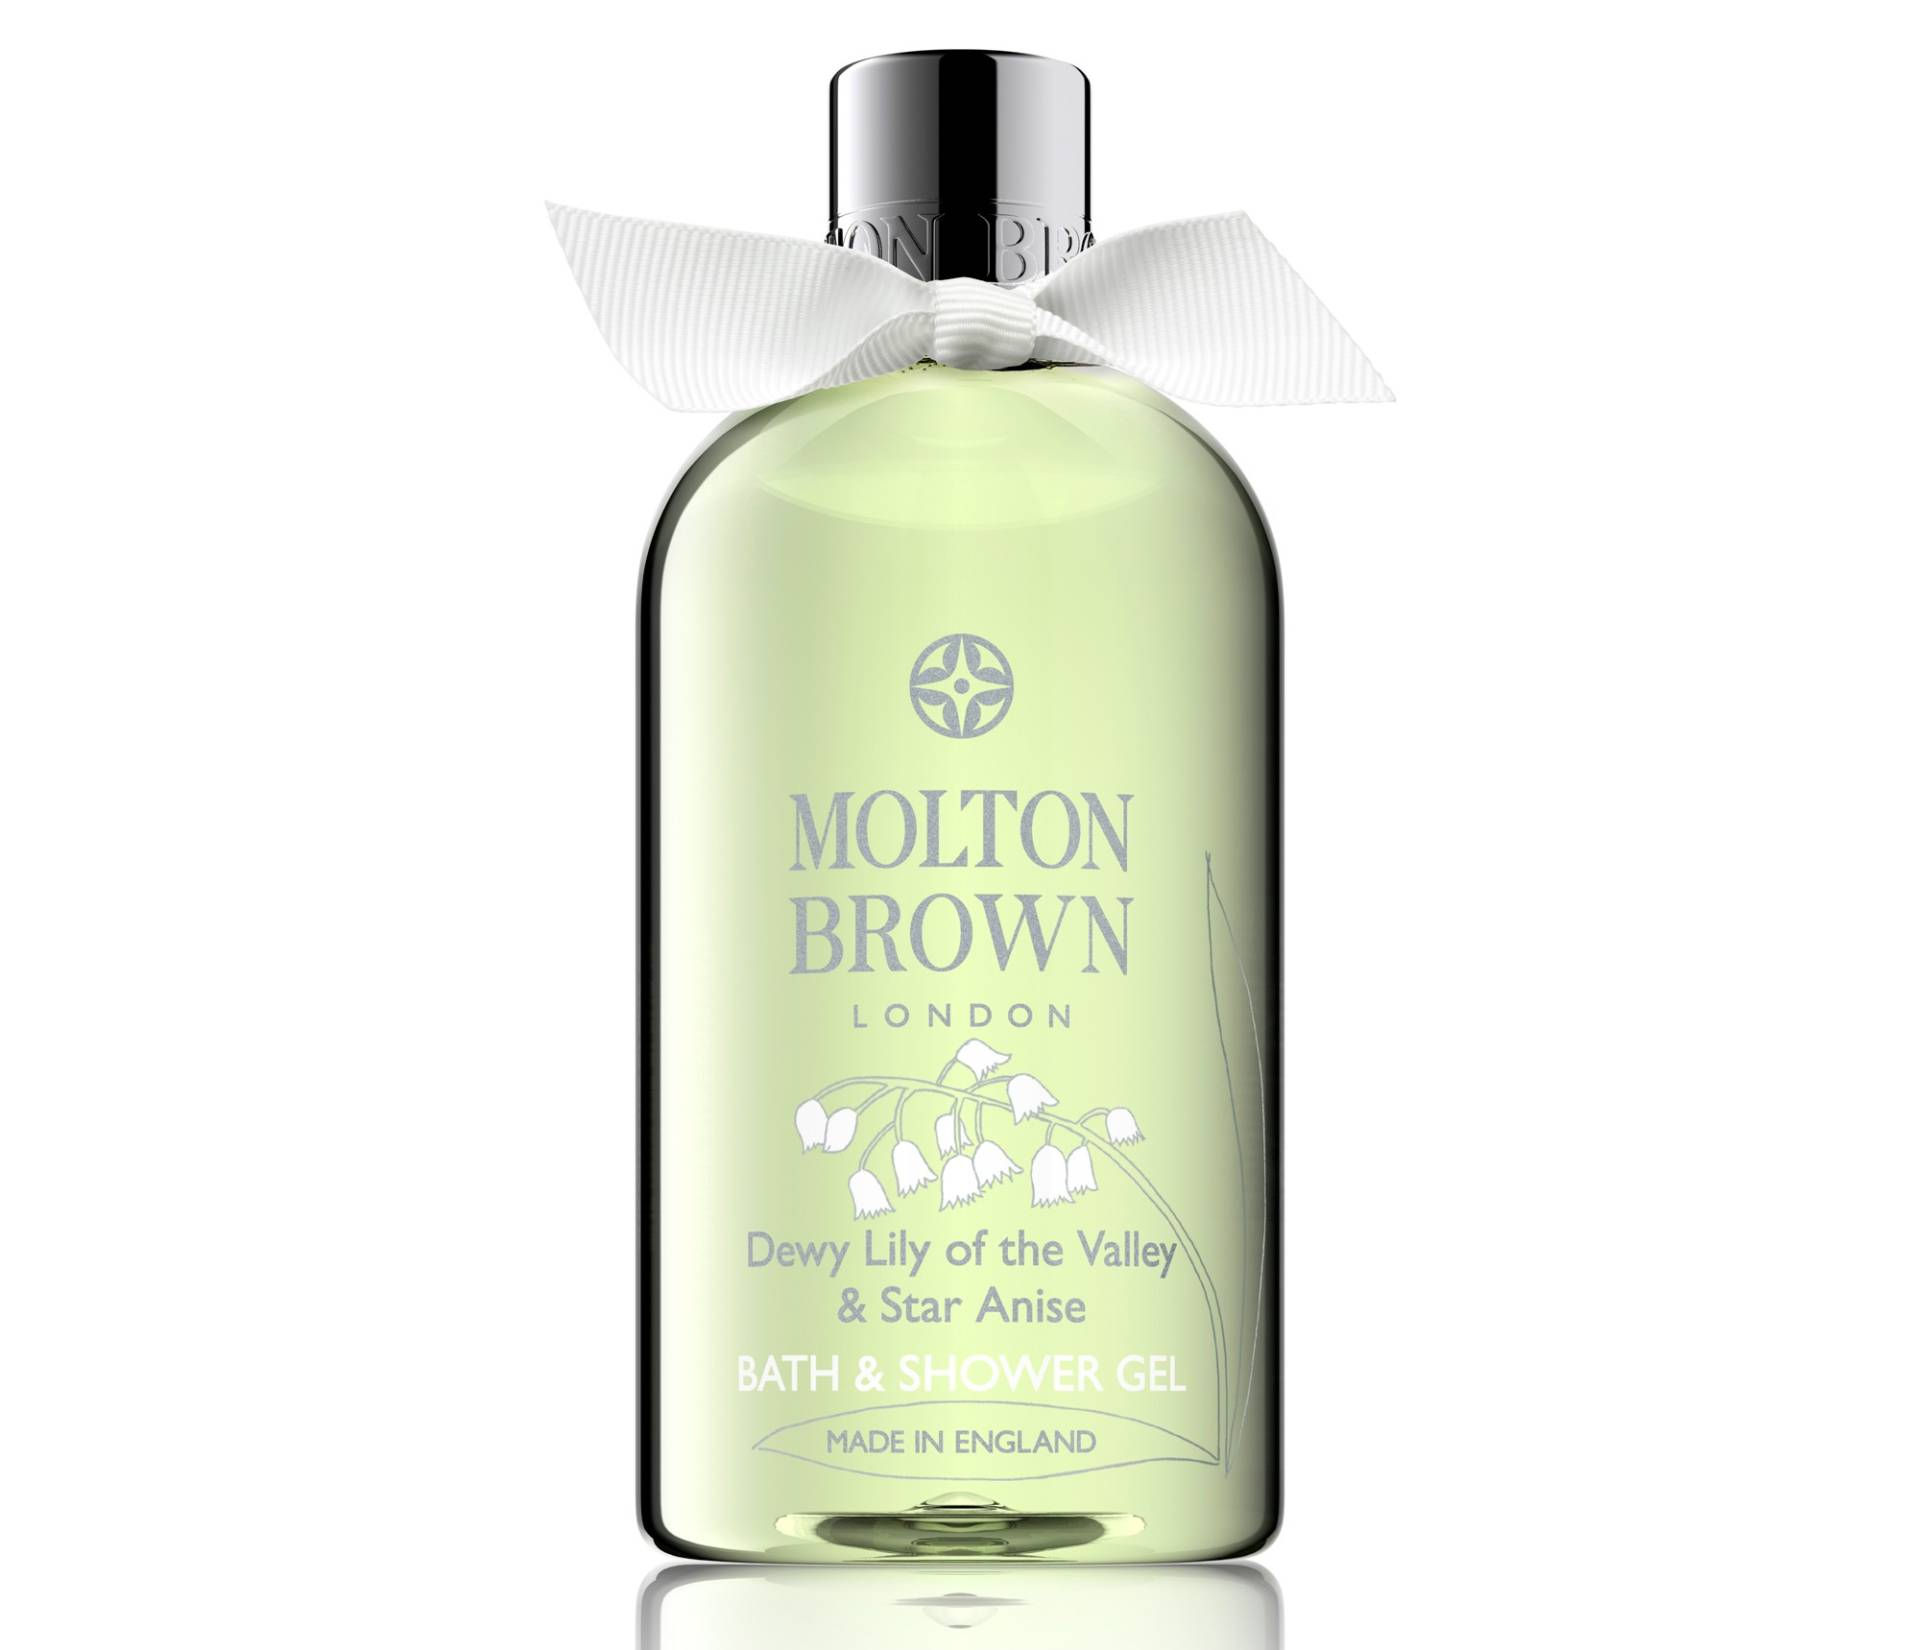 molton brown lily of the valley shower gel mothers day gift guide inhautepursuit review